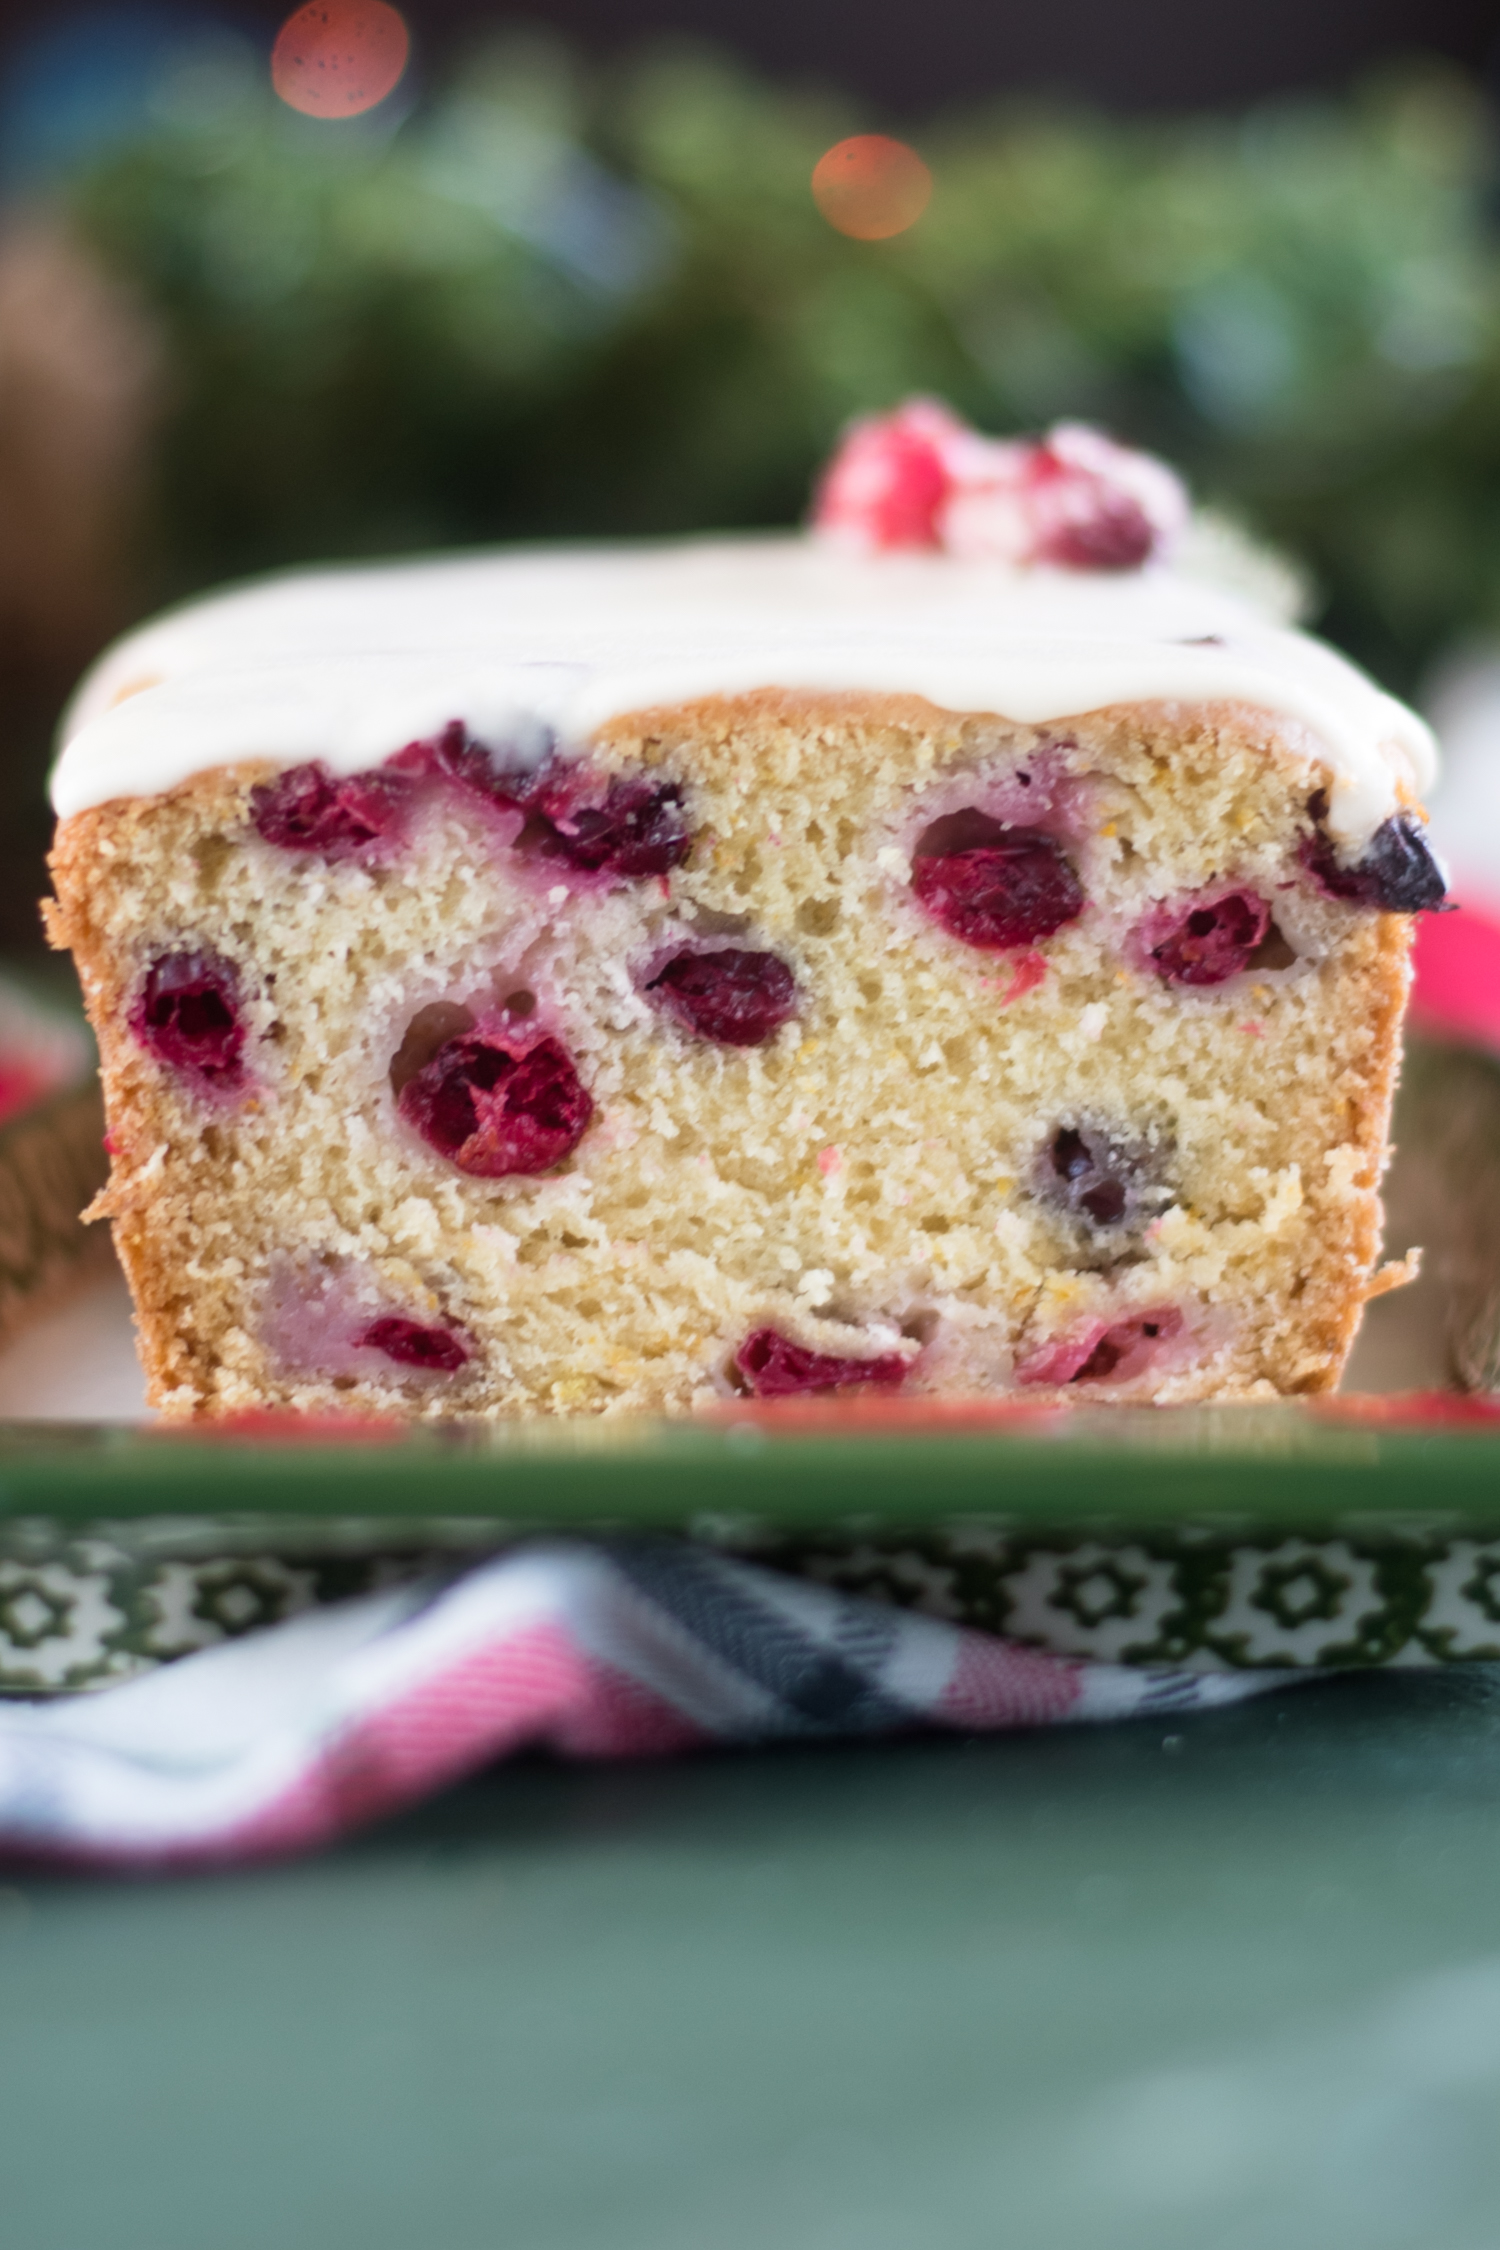 This Vegan Cranberry Orange Pound Cake would be perfect for serving on Christmas! Your family will just love this pound cake. #vegan #dessert #Christmas #holiday #recipes